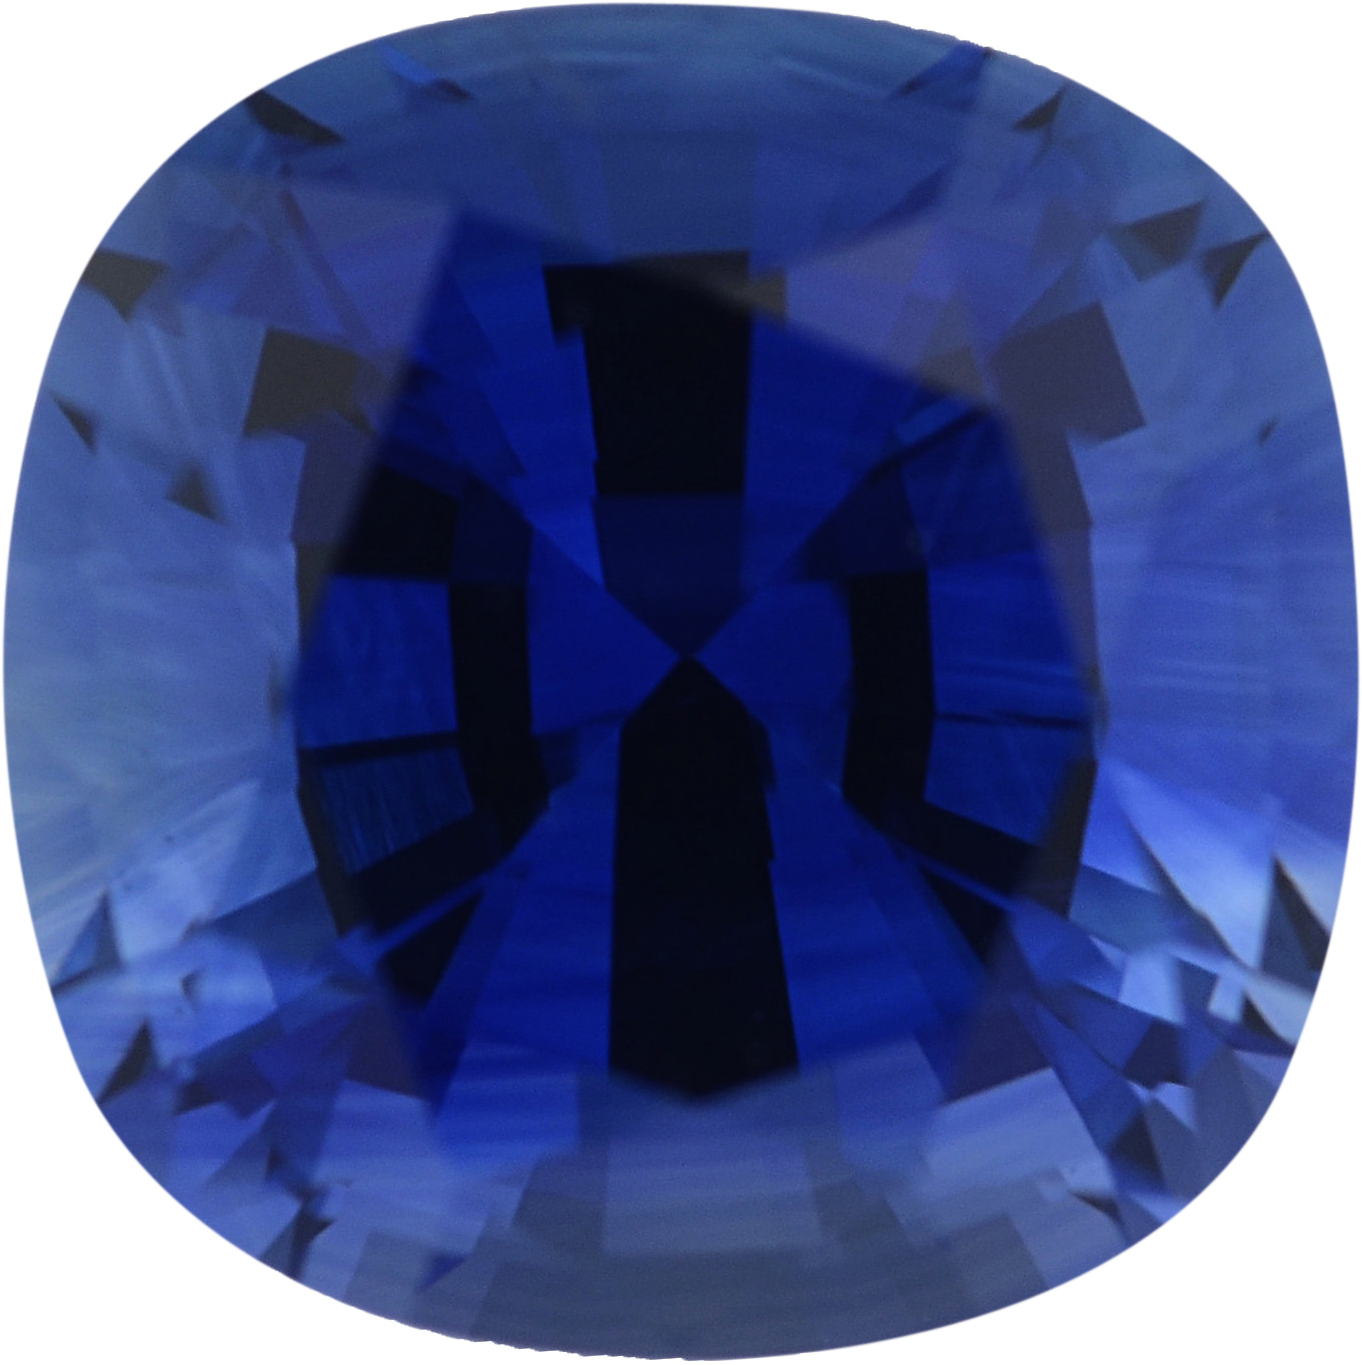 One-of-a-Kind Sapphire Loose Gem in Antique Square Cut, Medium Violet Blue, 6.55 x 6.52  mm, 1.59 Carats